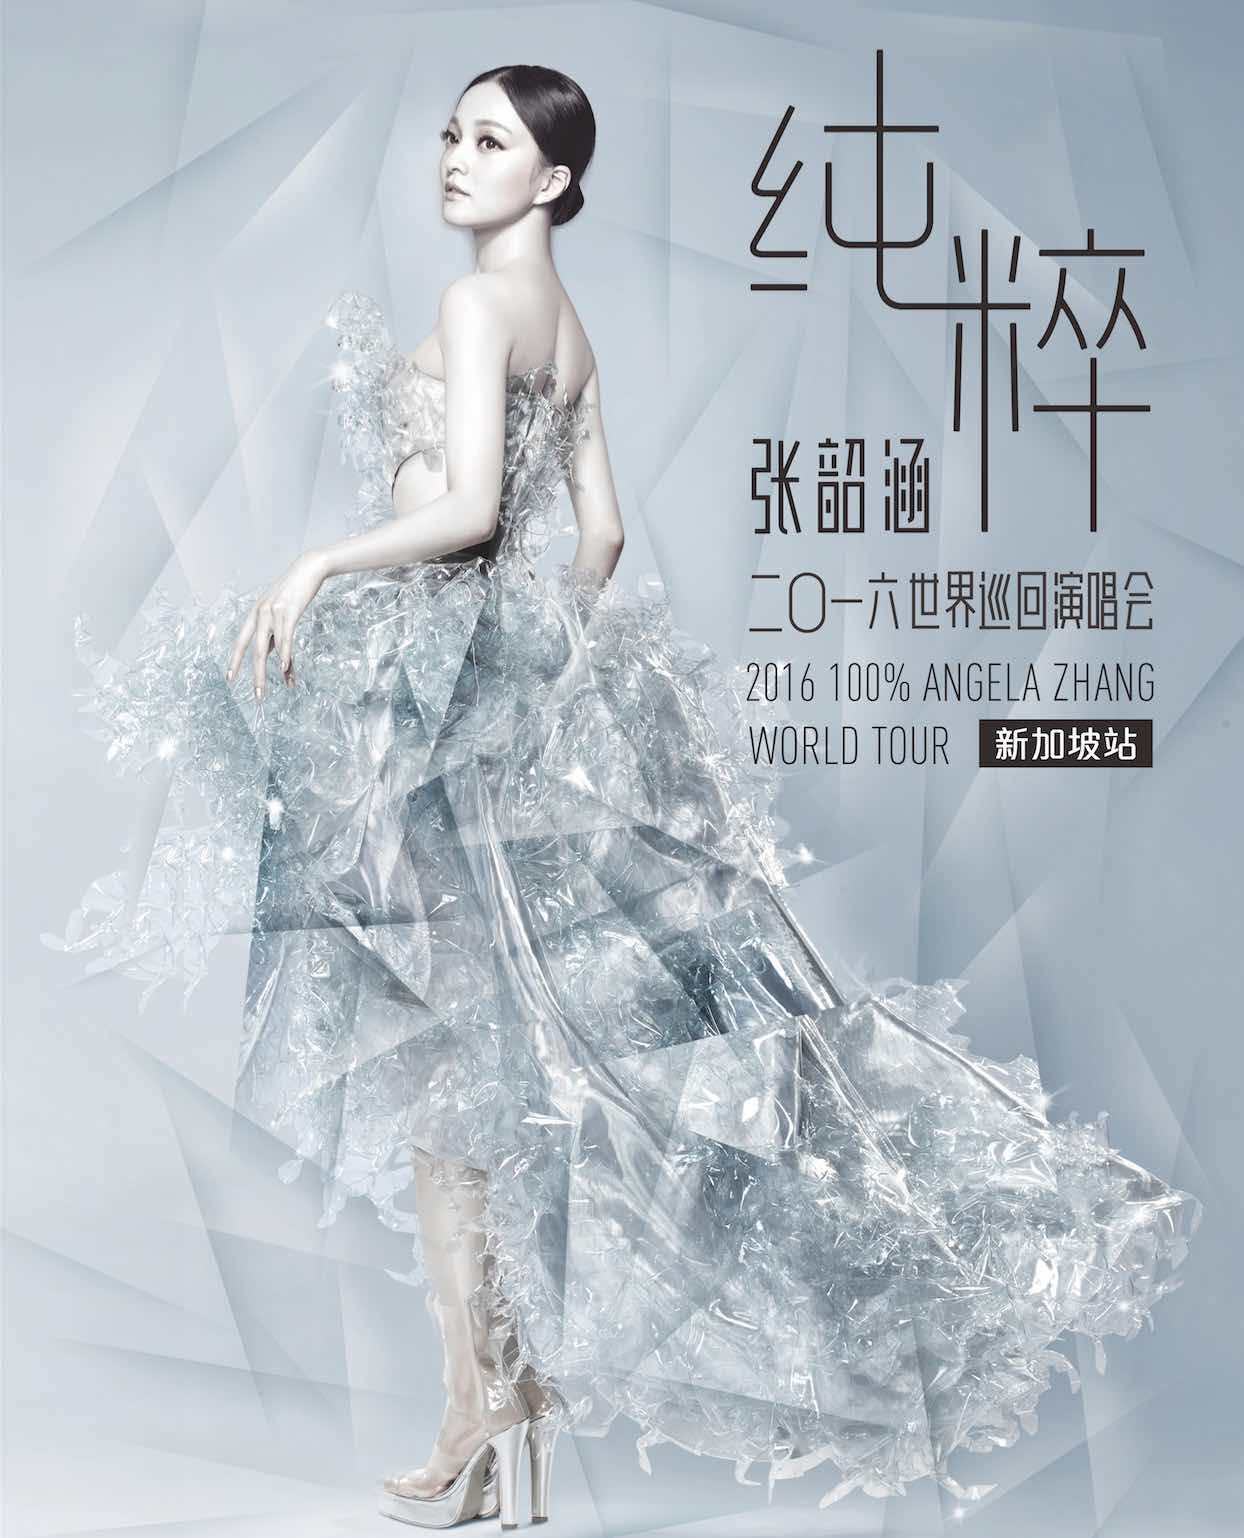 100-angela-zhang-world-tour-2016-aspirantsg